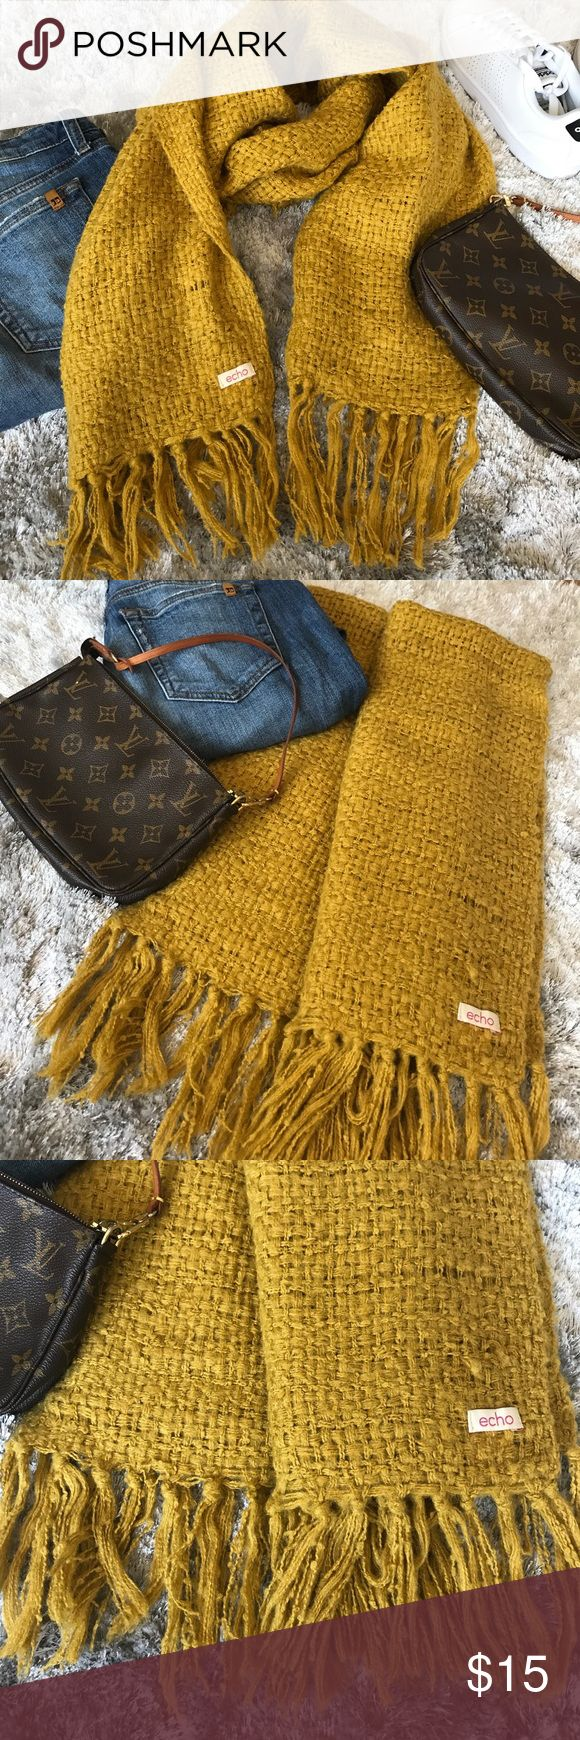 Echo mustard yellow oversized chunky knit scarf Echo oversized chunky knit scarf. Mustard yellow. Minor snags as shown in pics. Great condition. Echo Accessories Scarves & Wraps